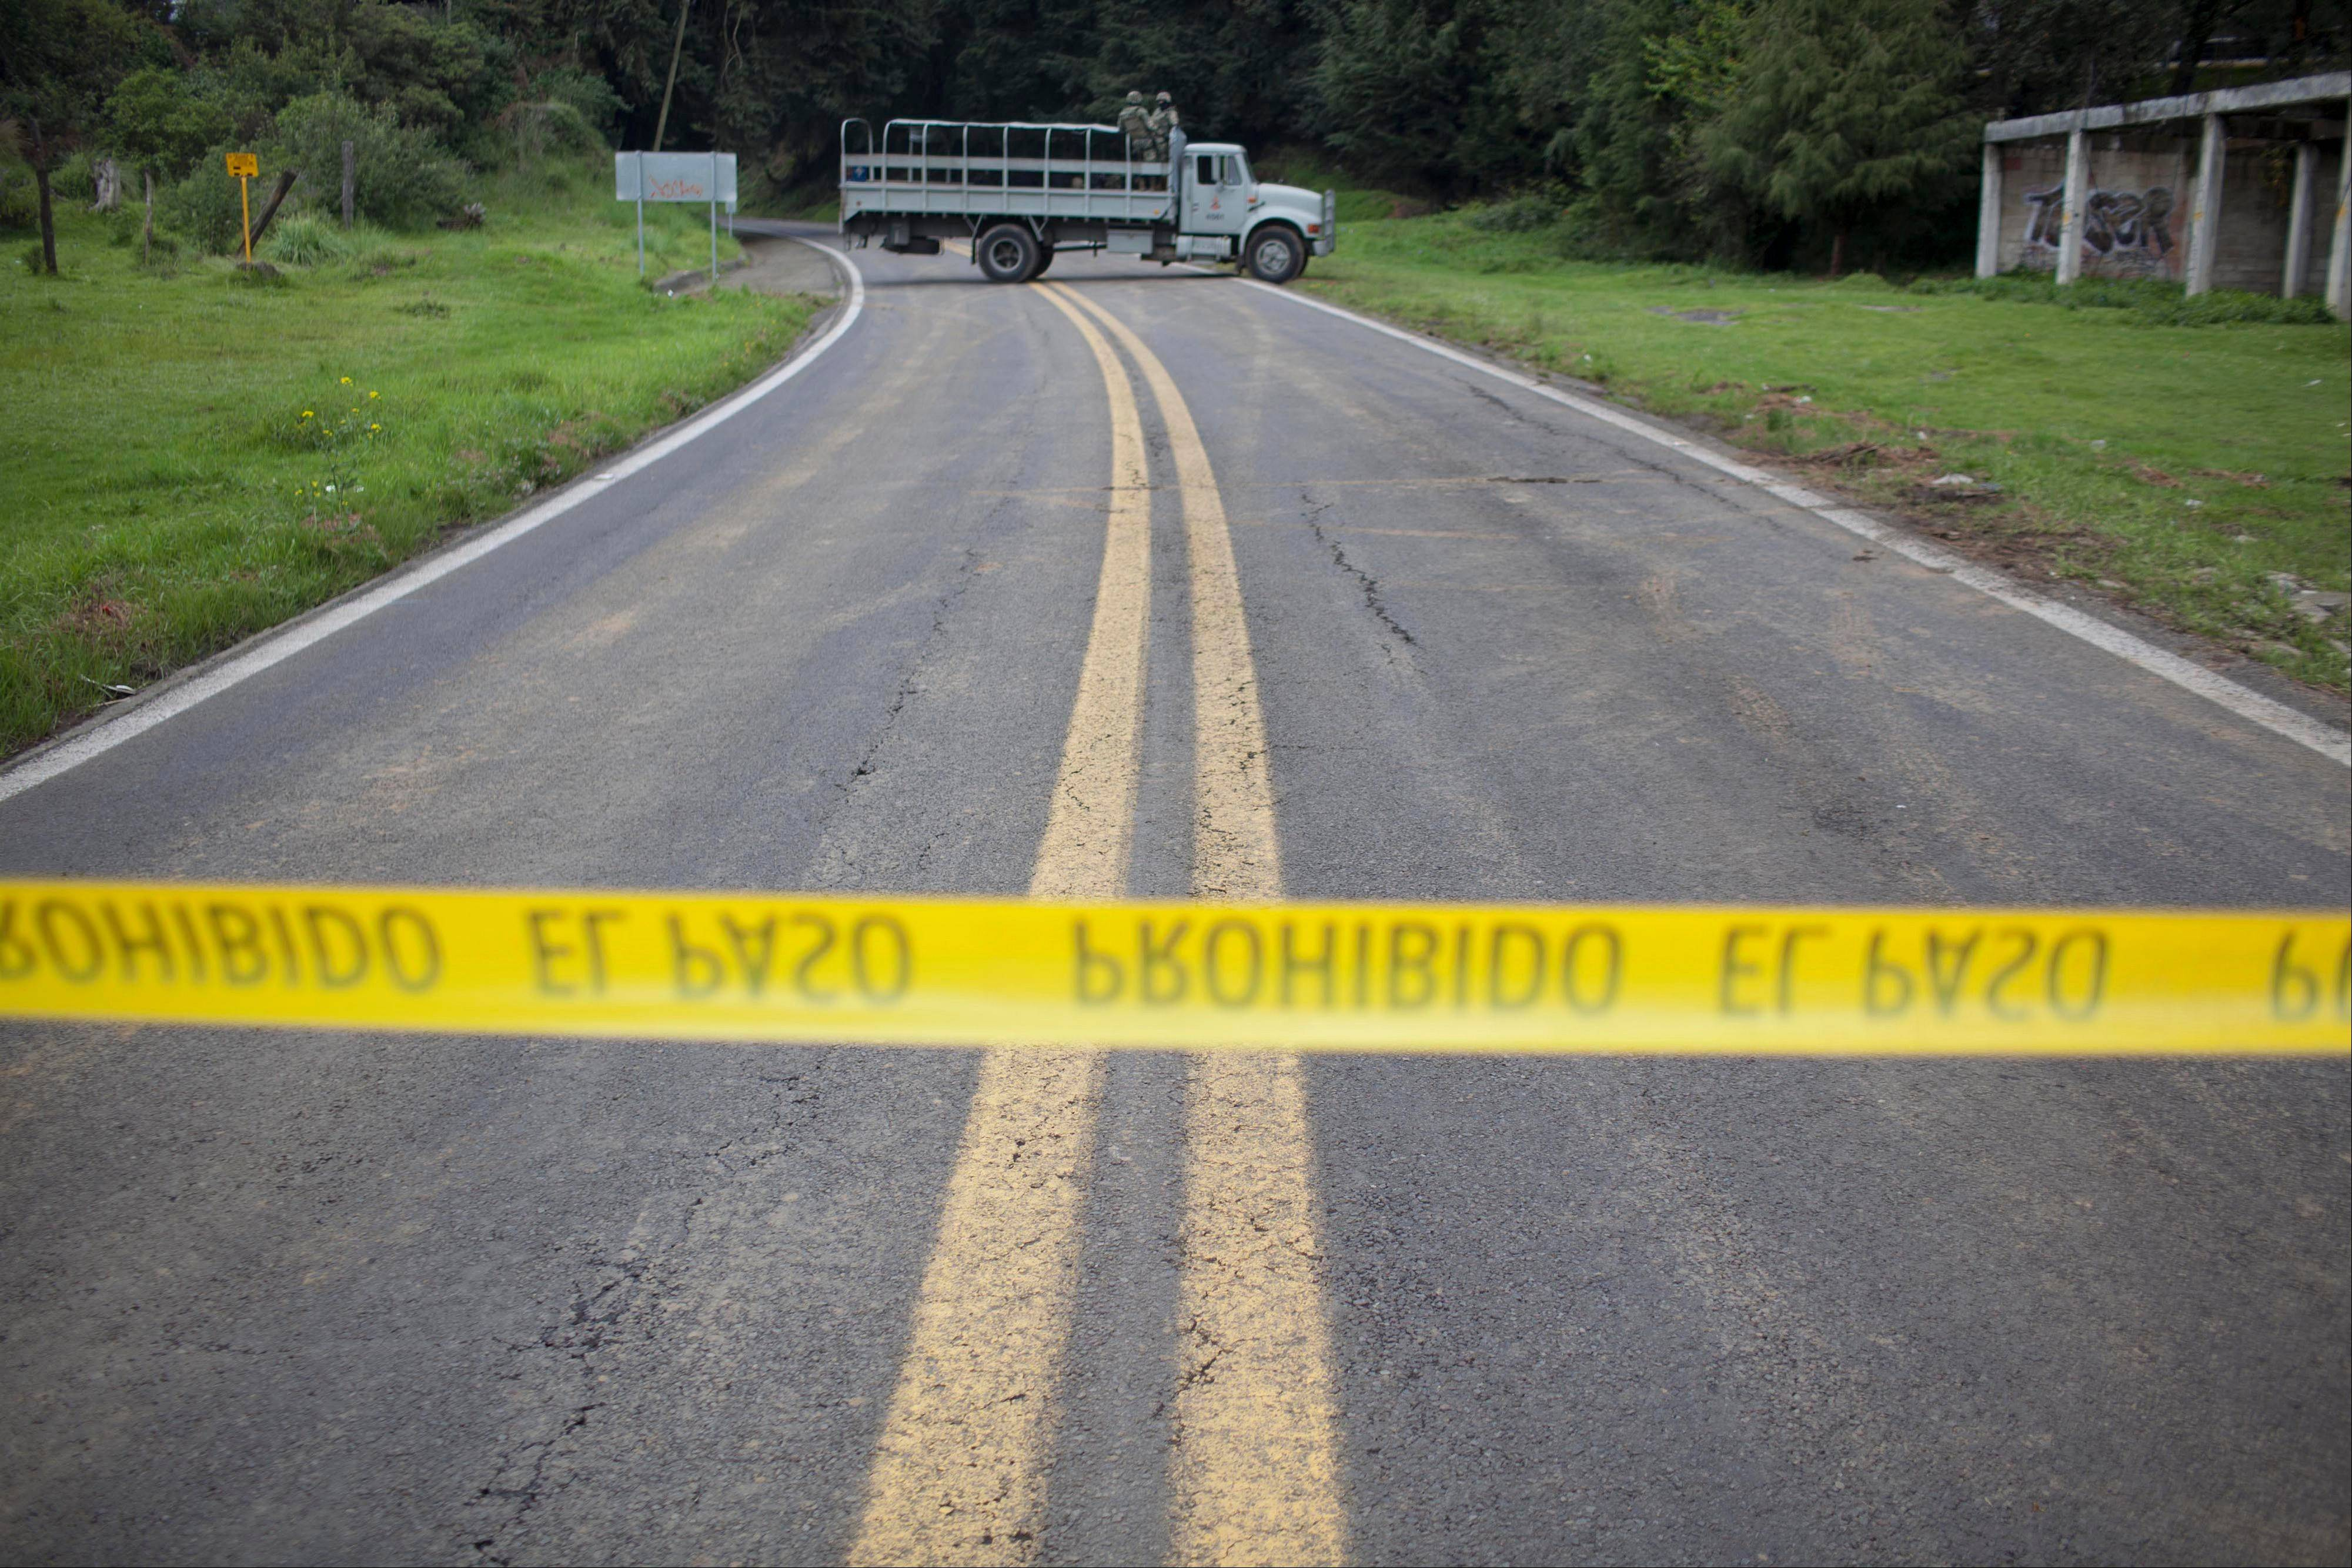 A Navy truck blocks the road near the site where an armored U.S. embassy vehicle, not in the picture, was attacked Friday by unknown assailants on the highway leading to Cuernavaca, near Tres Marias, Mexico.